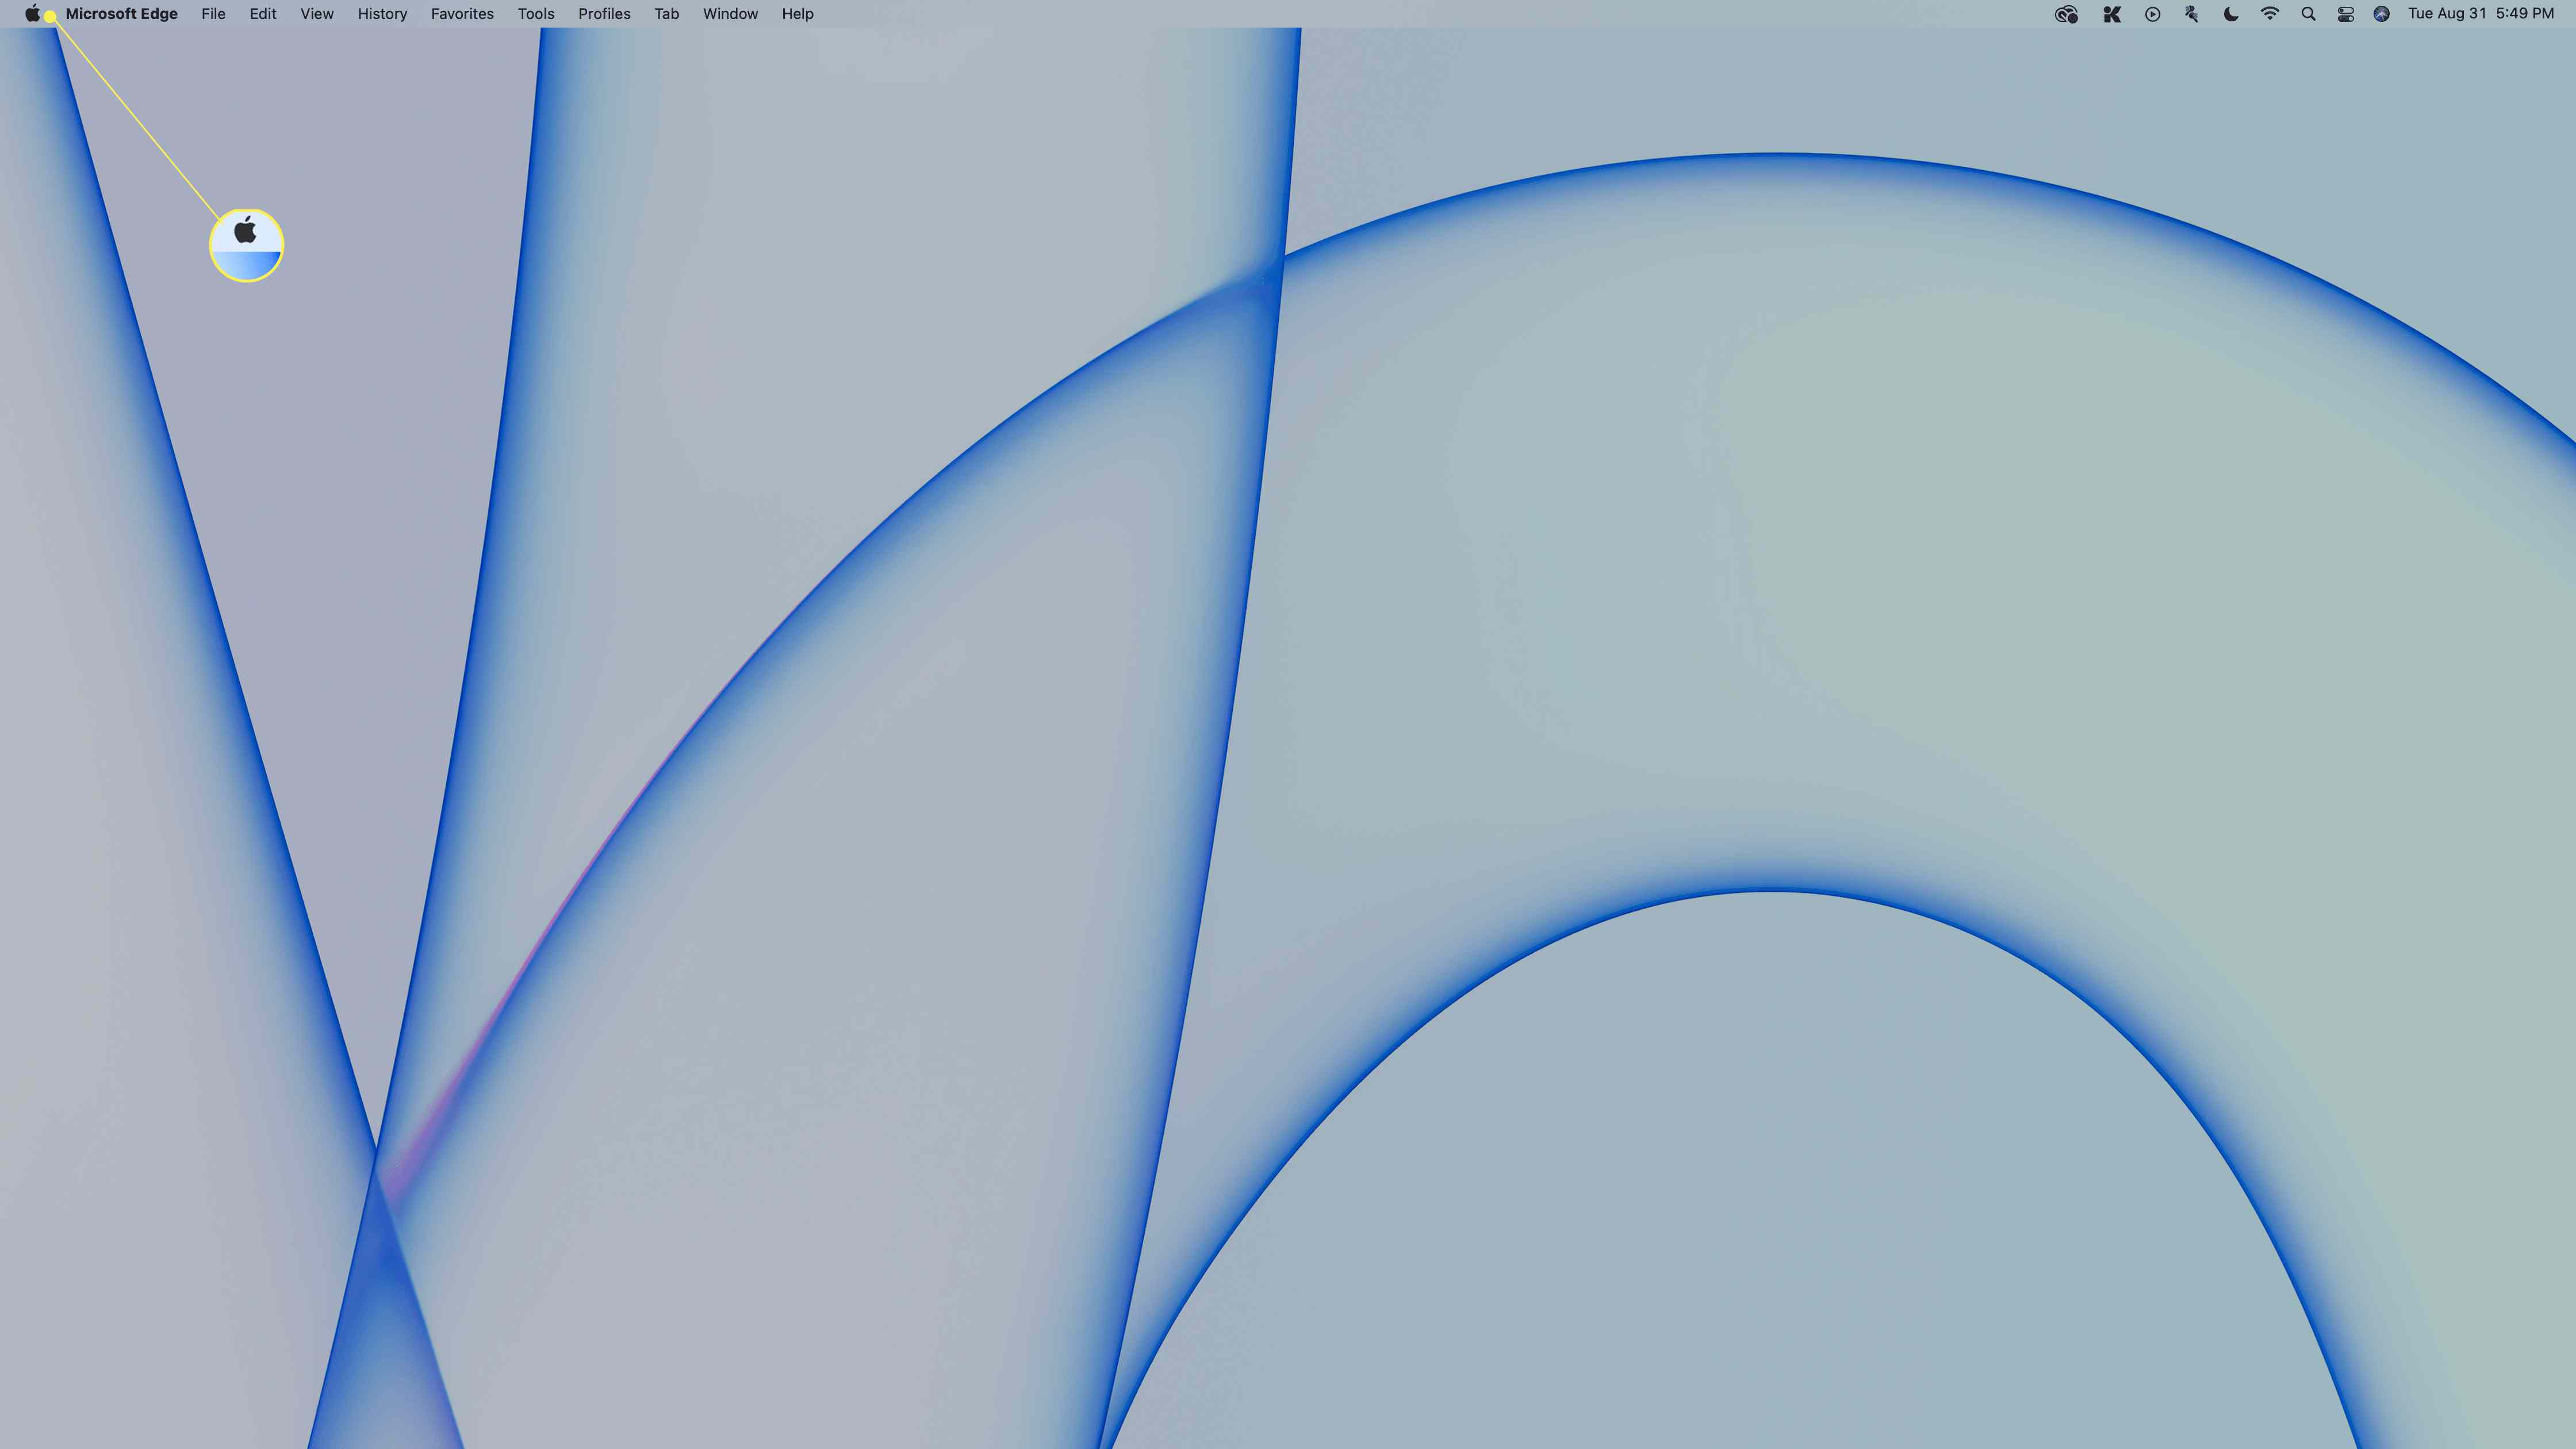 The Apple icon highlighted on the macOS menu bar.